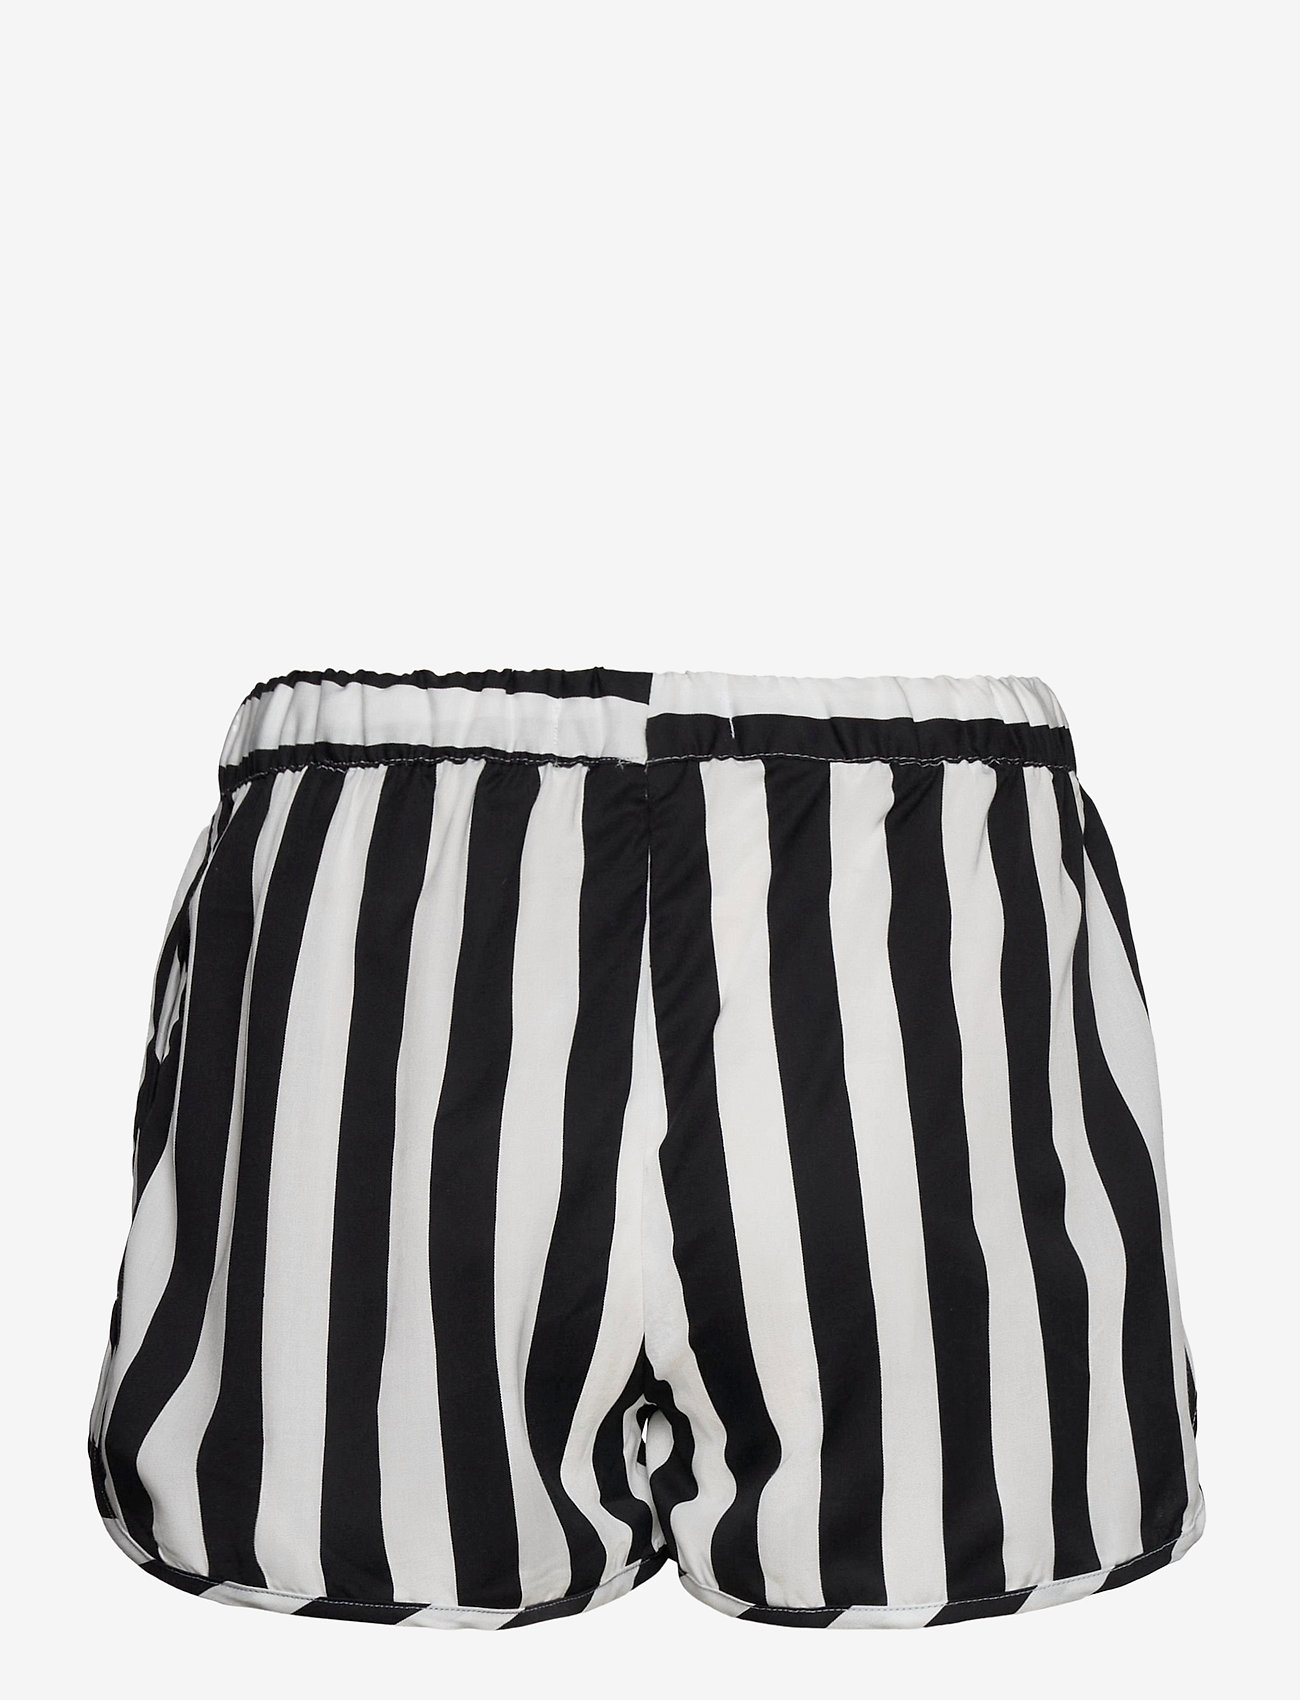 Shorts Sandvika Big Stripes (White) (34.98 €) - DEDICATED Dlm8s